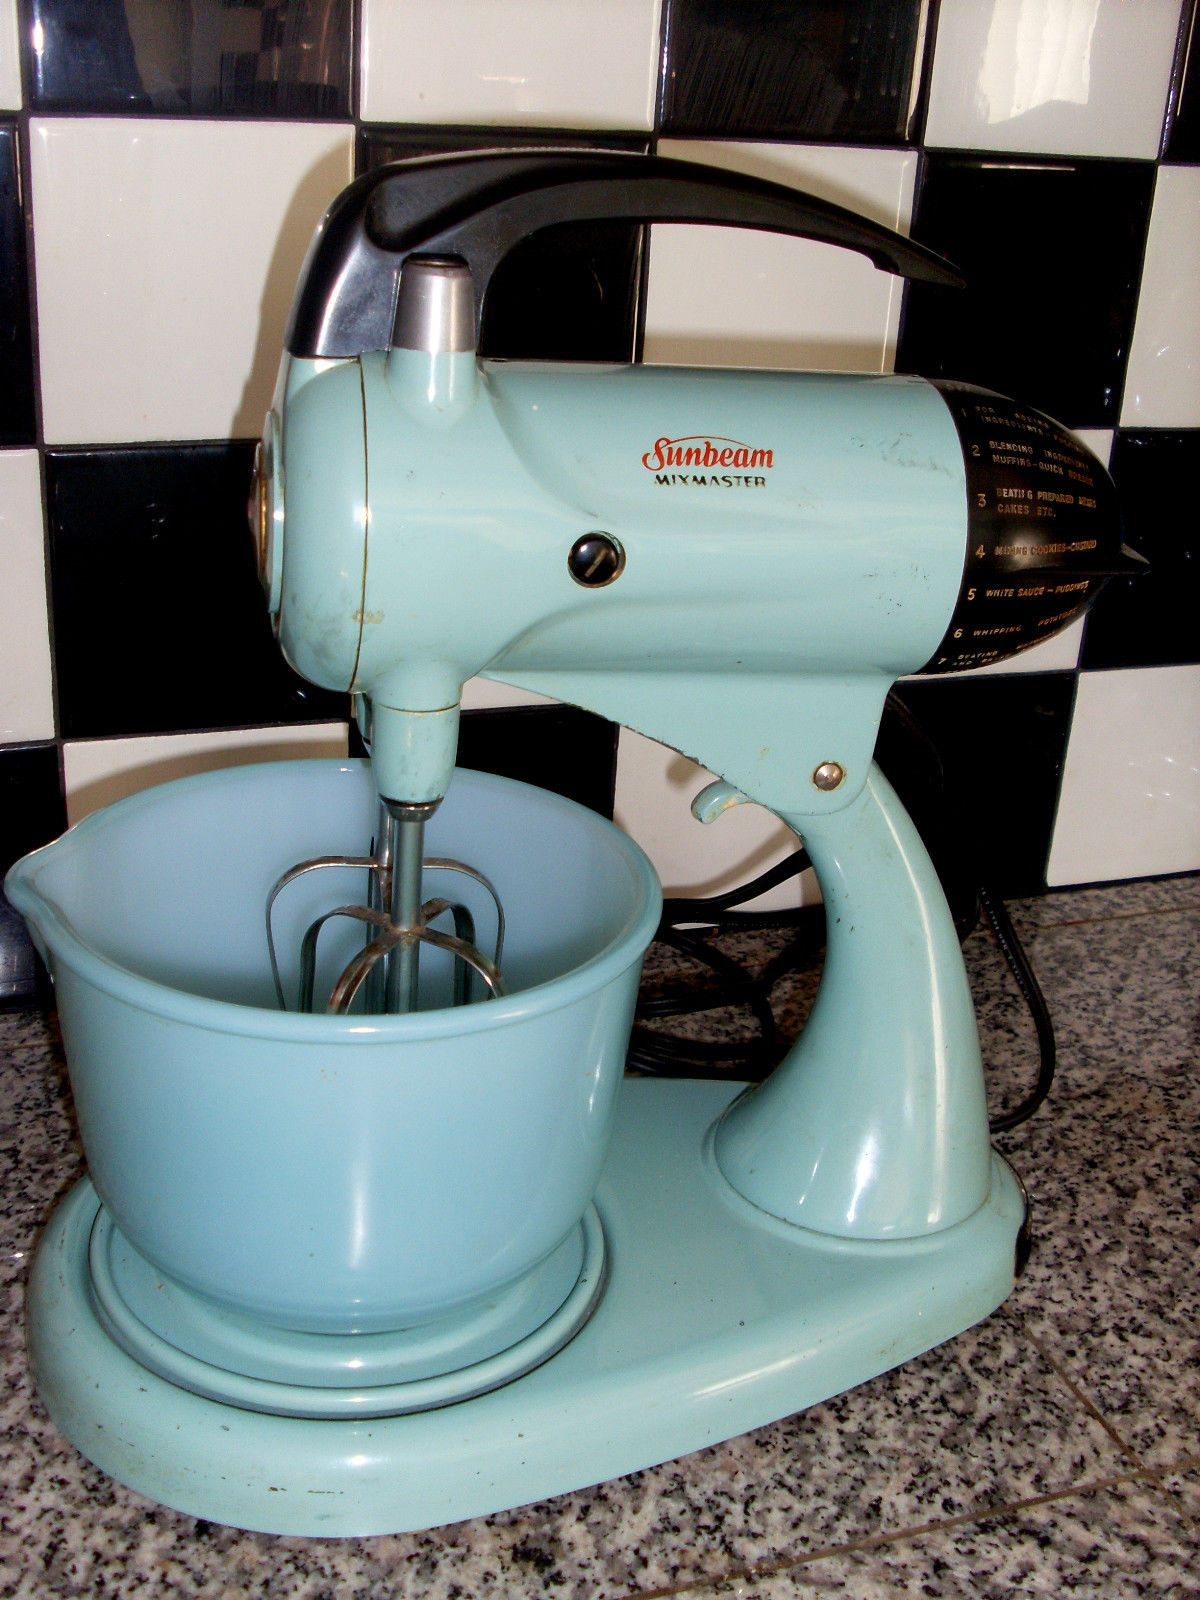 Uncategorized 1950s Kitchen Appliances vintage 1950s sunbeam mixmaster model 12c black chrome kitchen aqua turquoise green mixer w matching bowl by glasbake ebay 97 99